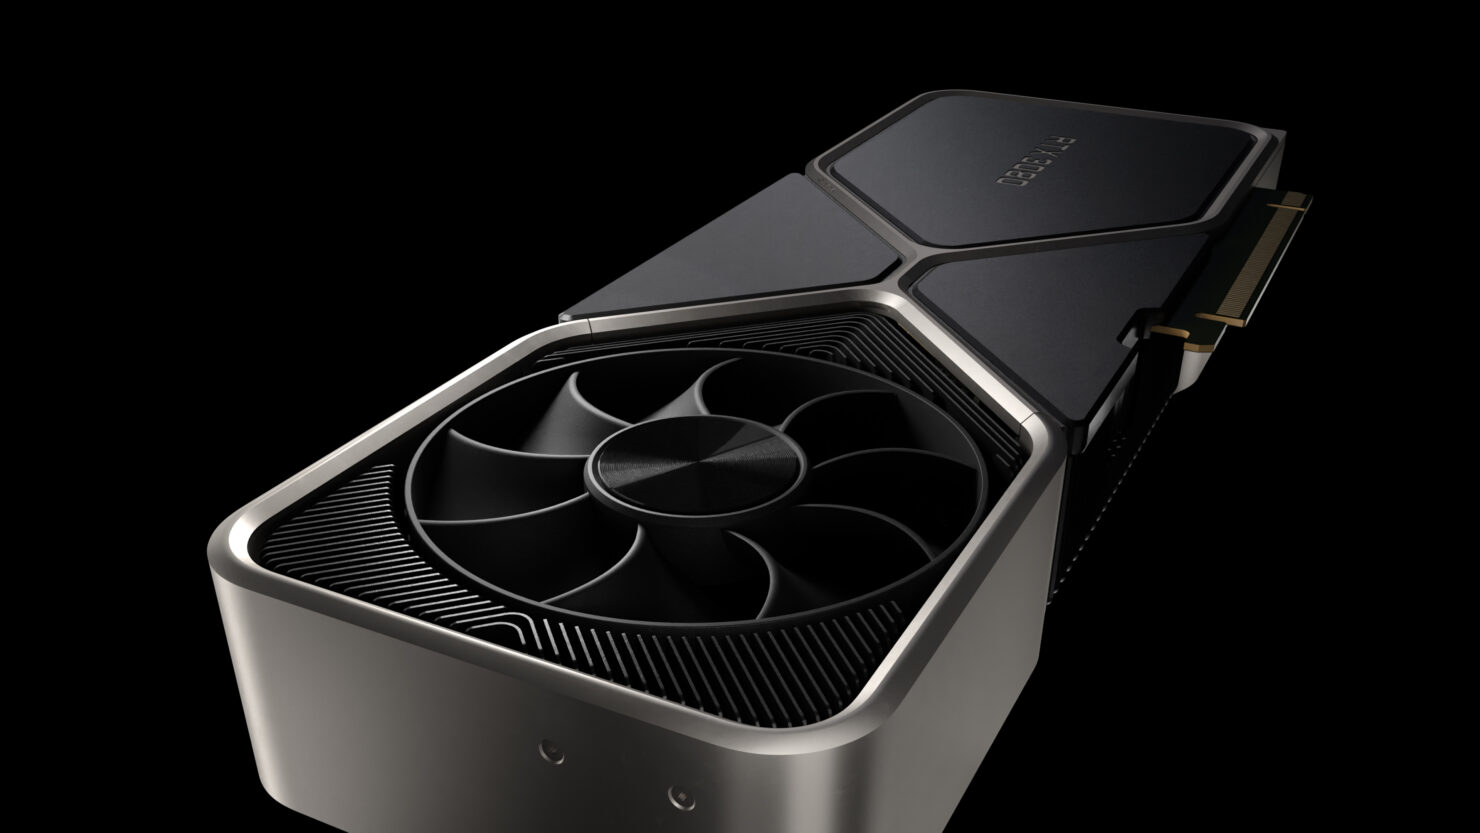 geforce-rtx-3080-product-gallery-full-screen-3840-2